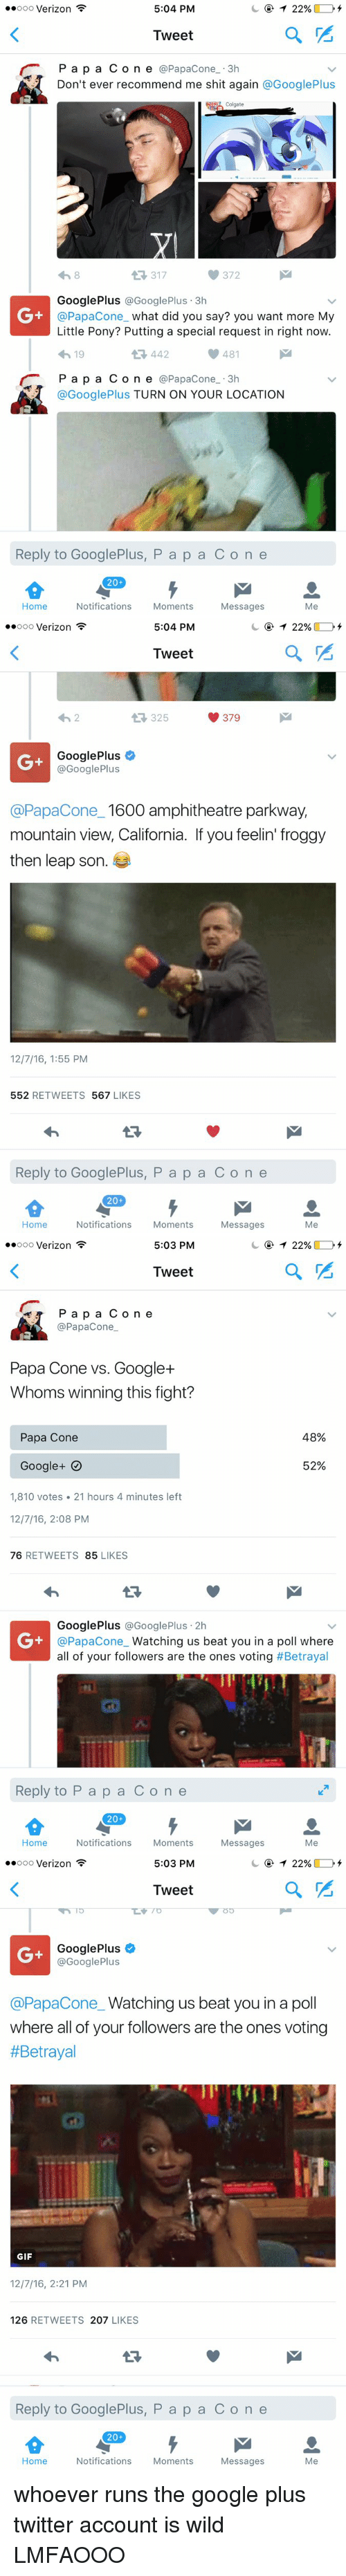 what did you say: 5:04 PM  T 22%  ooooo Verizon  Tweet  r P a p a C o n e  @Papac one 3h  Don't ever recommend me shit again  @Google Plus  Colgate  317  Google Plus  @Google Plus 3h  @Papacone what did you say? you want more My  Little Pony? Putting a special request in right now.  481  4h 19  442  P a p a C o n e  a Papac one 3h  @Google Plus TURN ON YOUR LOCATION  Reply to Google Plus, P a p a C o n e  20  Notifications  Moments  Home  Messages  Me   5:04 PM  22%  ooooo Verizon  Tweet  379  325  Google Plus  @Google Plus  @Papacone 1600 amphitheatre parkway,  mountain view, California. If you feelin' froggy  then leap son  12/7/16, 1:55 PM  552  RETWEETS  567  LIKES  Reply to GooglePlus, P a p a C o n e  20  Home  Notifications  Moments  Messages  Me   5:03 PM  T 22%  ooooo Verizon  a  Tweet  P a p a C o n e  Papac one  Papa Cone vs. Google  Whoms winning this fight?  48%  Papa Cone  52%  Google  1,810 votes 21 hours 4 minutes left  12/7/16, 2:08 PM  76  RETWEETS  85  LIKES  Google Plus Google Plus 2h  @Papa Cone  Watching us beat you in a poll where  all of your followers are the ones voting  #Betrayal  Reply to P a p a C o n e  20  Notifications  Moments  Home  Messages  Me   5:03 PM  T 22%  ooooo Verizon  a  Tweet  Google Plus  Google Plus  @Papacone Watching us beat you in a poll  where all of your followers are the ones voting  #Betrayal  GIF  12/7/16, 2:21 PM  126  RETWEETS  207  LIKES  Reply to GooglePlus, P a p a C o n e  20  Notifications  Moments  Home  Messages  Me whoever runs the google plus twitter account is wild LMFAOOO